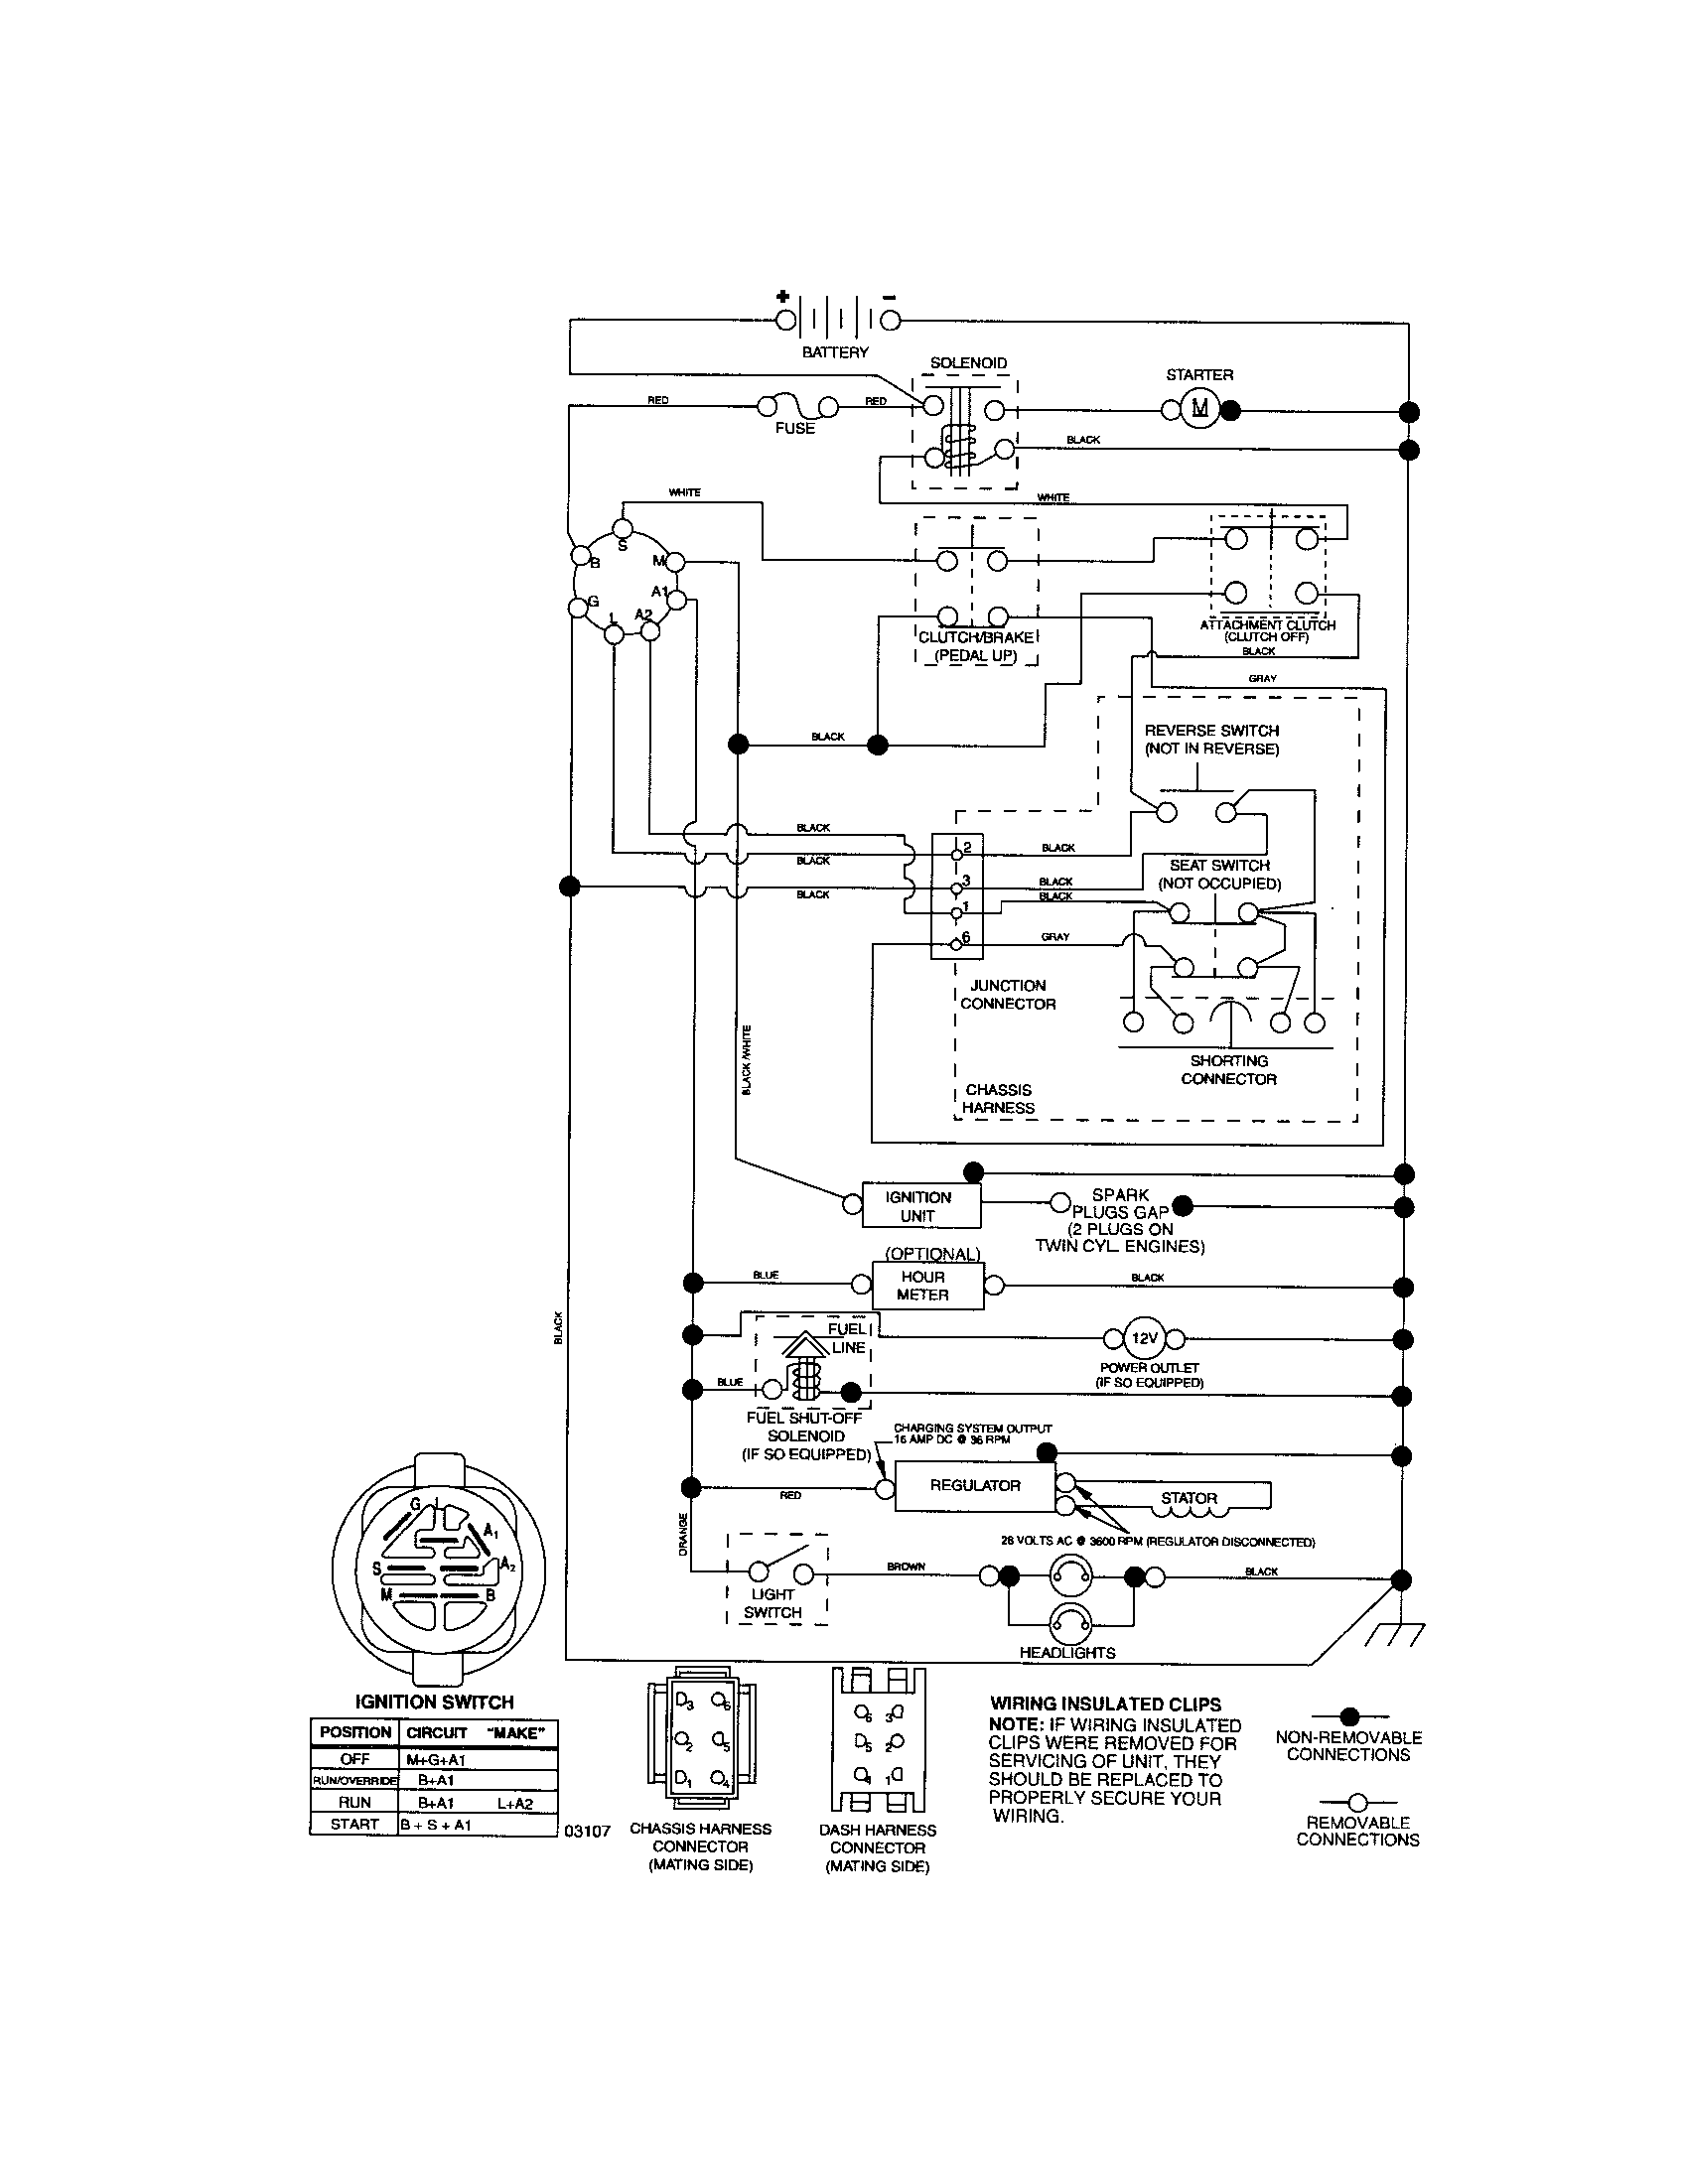 27u26y in addition 34exp 1997 Dodge Ram 1500 4x4 88 000 Mi Problem Won T Start moreover Wiring Diagrams For Lighting Circuits further Snapper Joystick Wiring Diagram besides 2010 11 20 205812 1 To 2004 Gmc Sierra Wiring Diagram. on electrical connections diag…